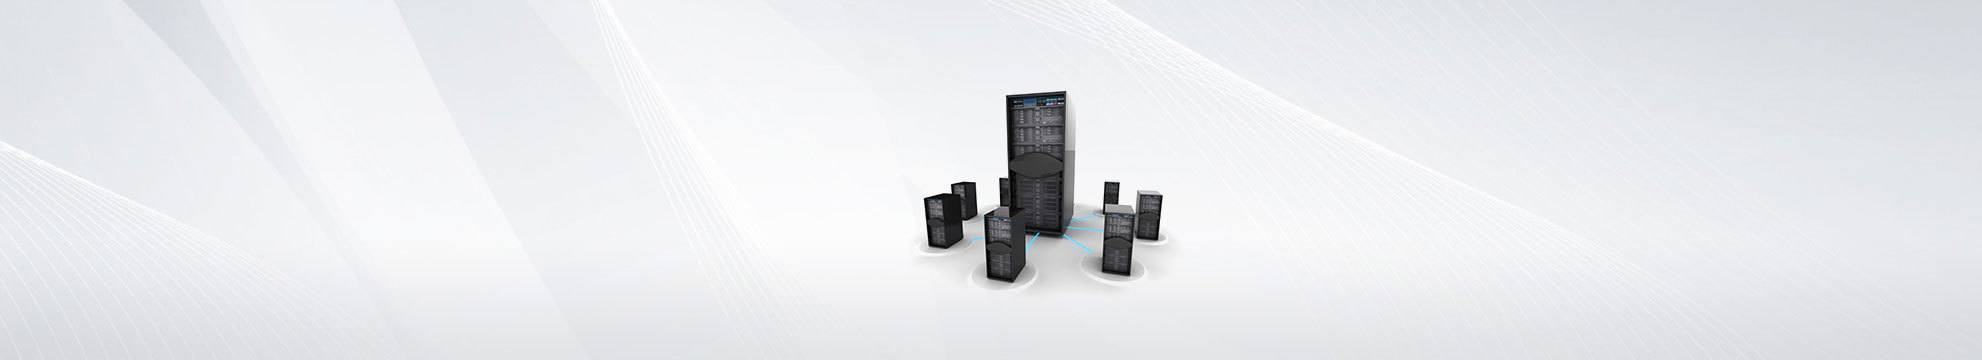 slide-vps-full-height